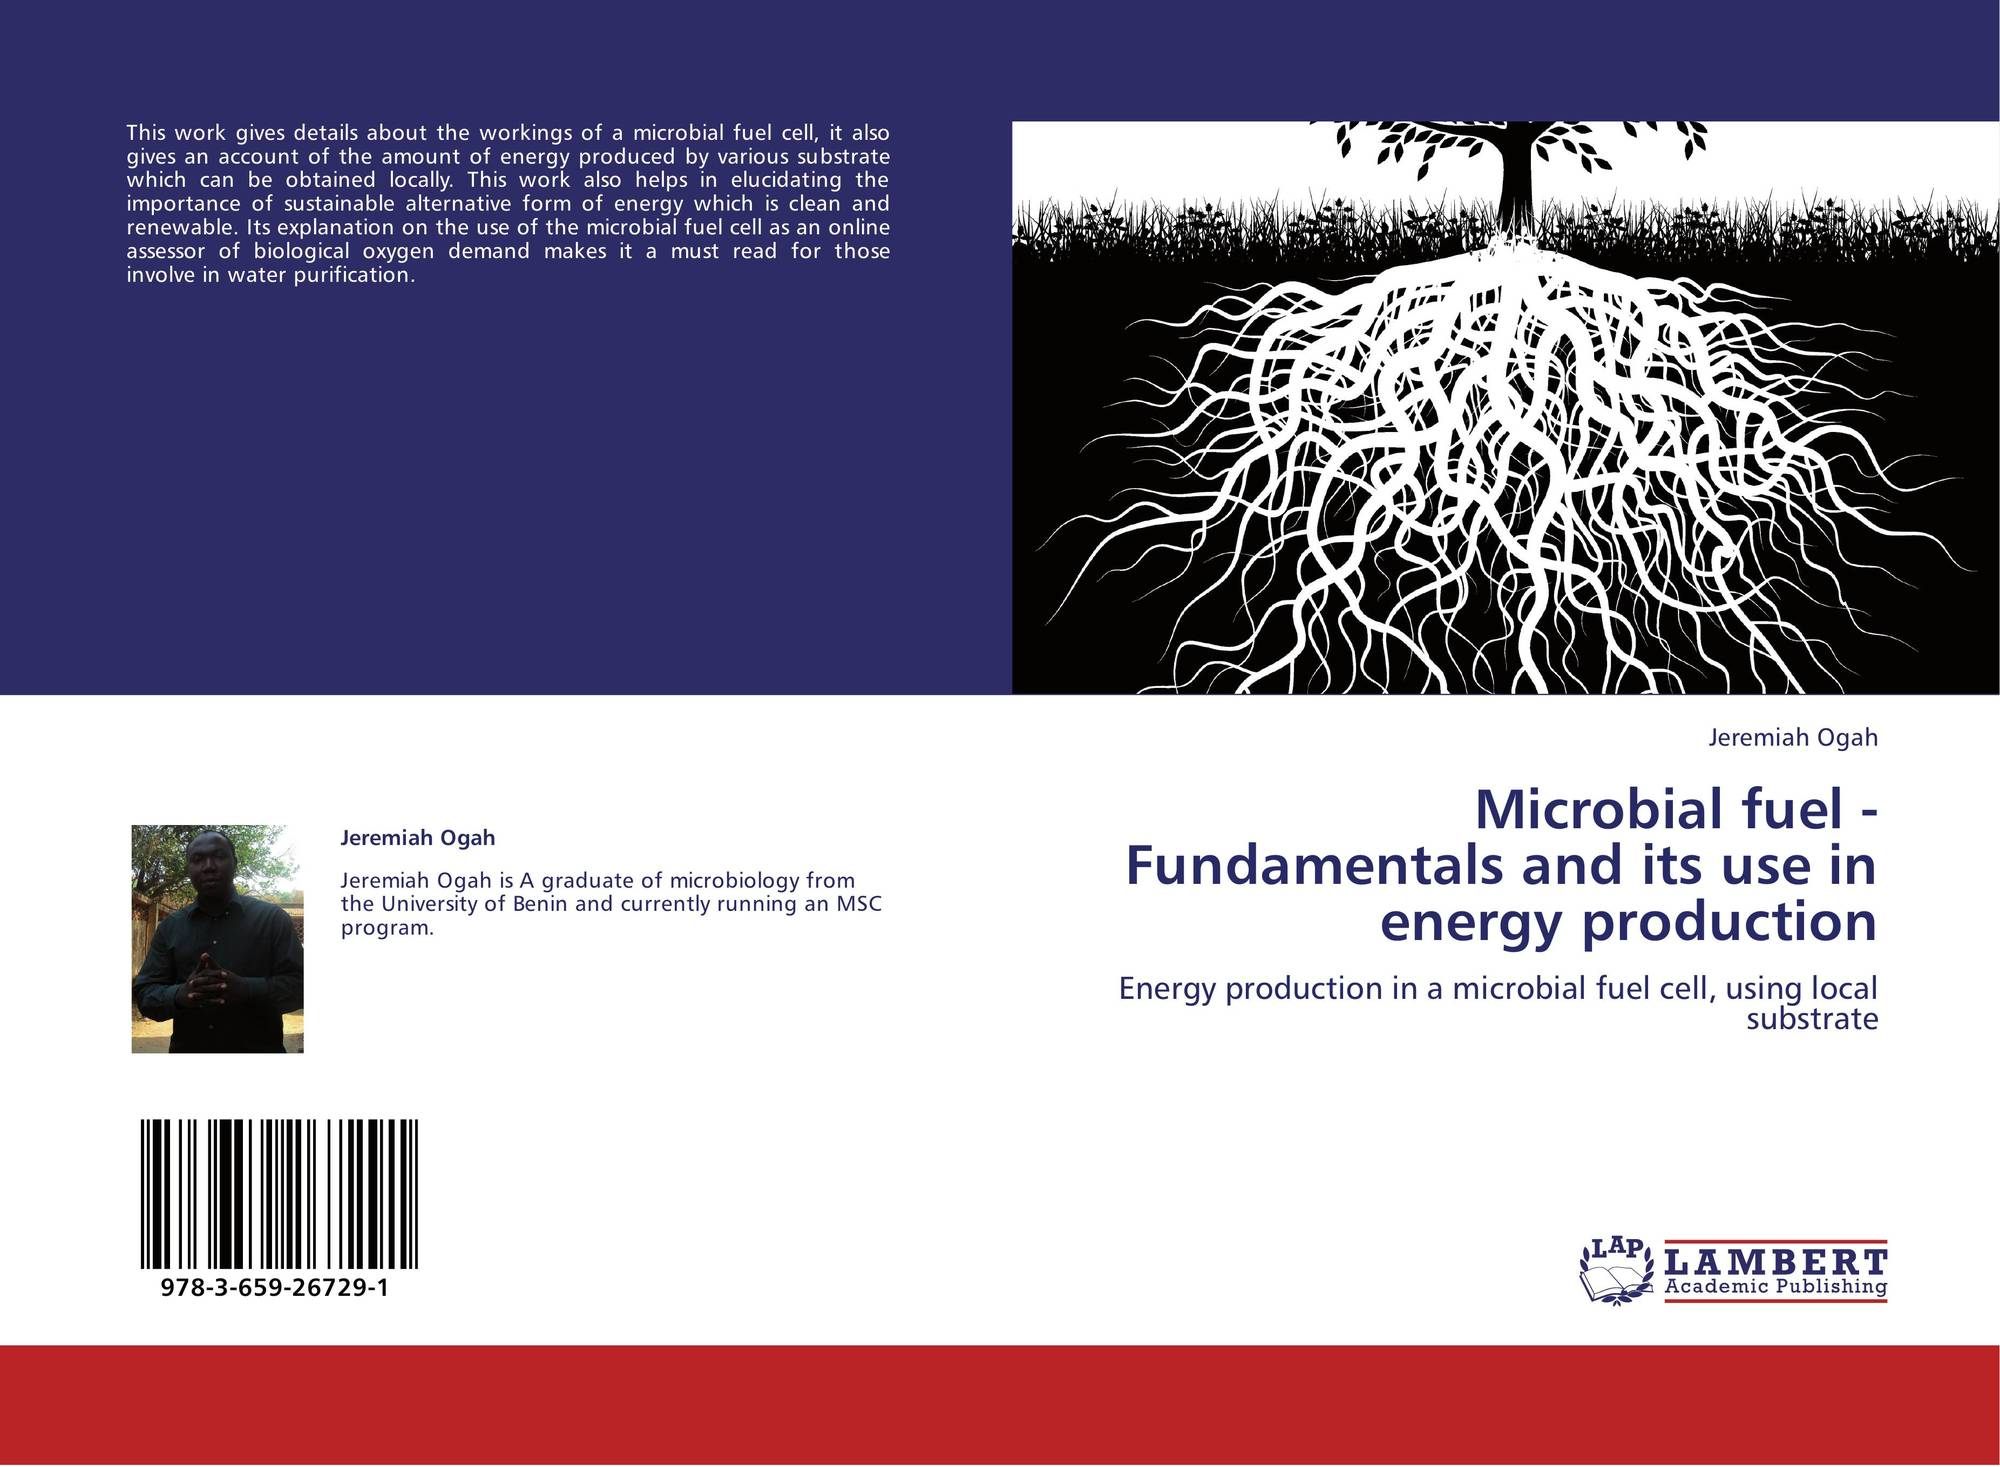 efficient energy harvester for microbial fuel A microbial fuel cell (mfc), or biological fuel cell, is a bio-electrochemical system that drives an electric current by using bacteria and mimicking bacterial interactions found in nature mfcs can be grouped into two general categories: mediated and unmediated.